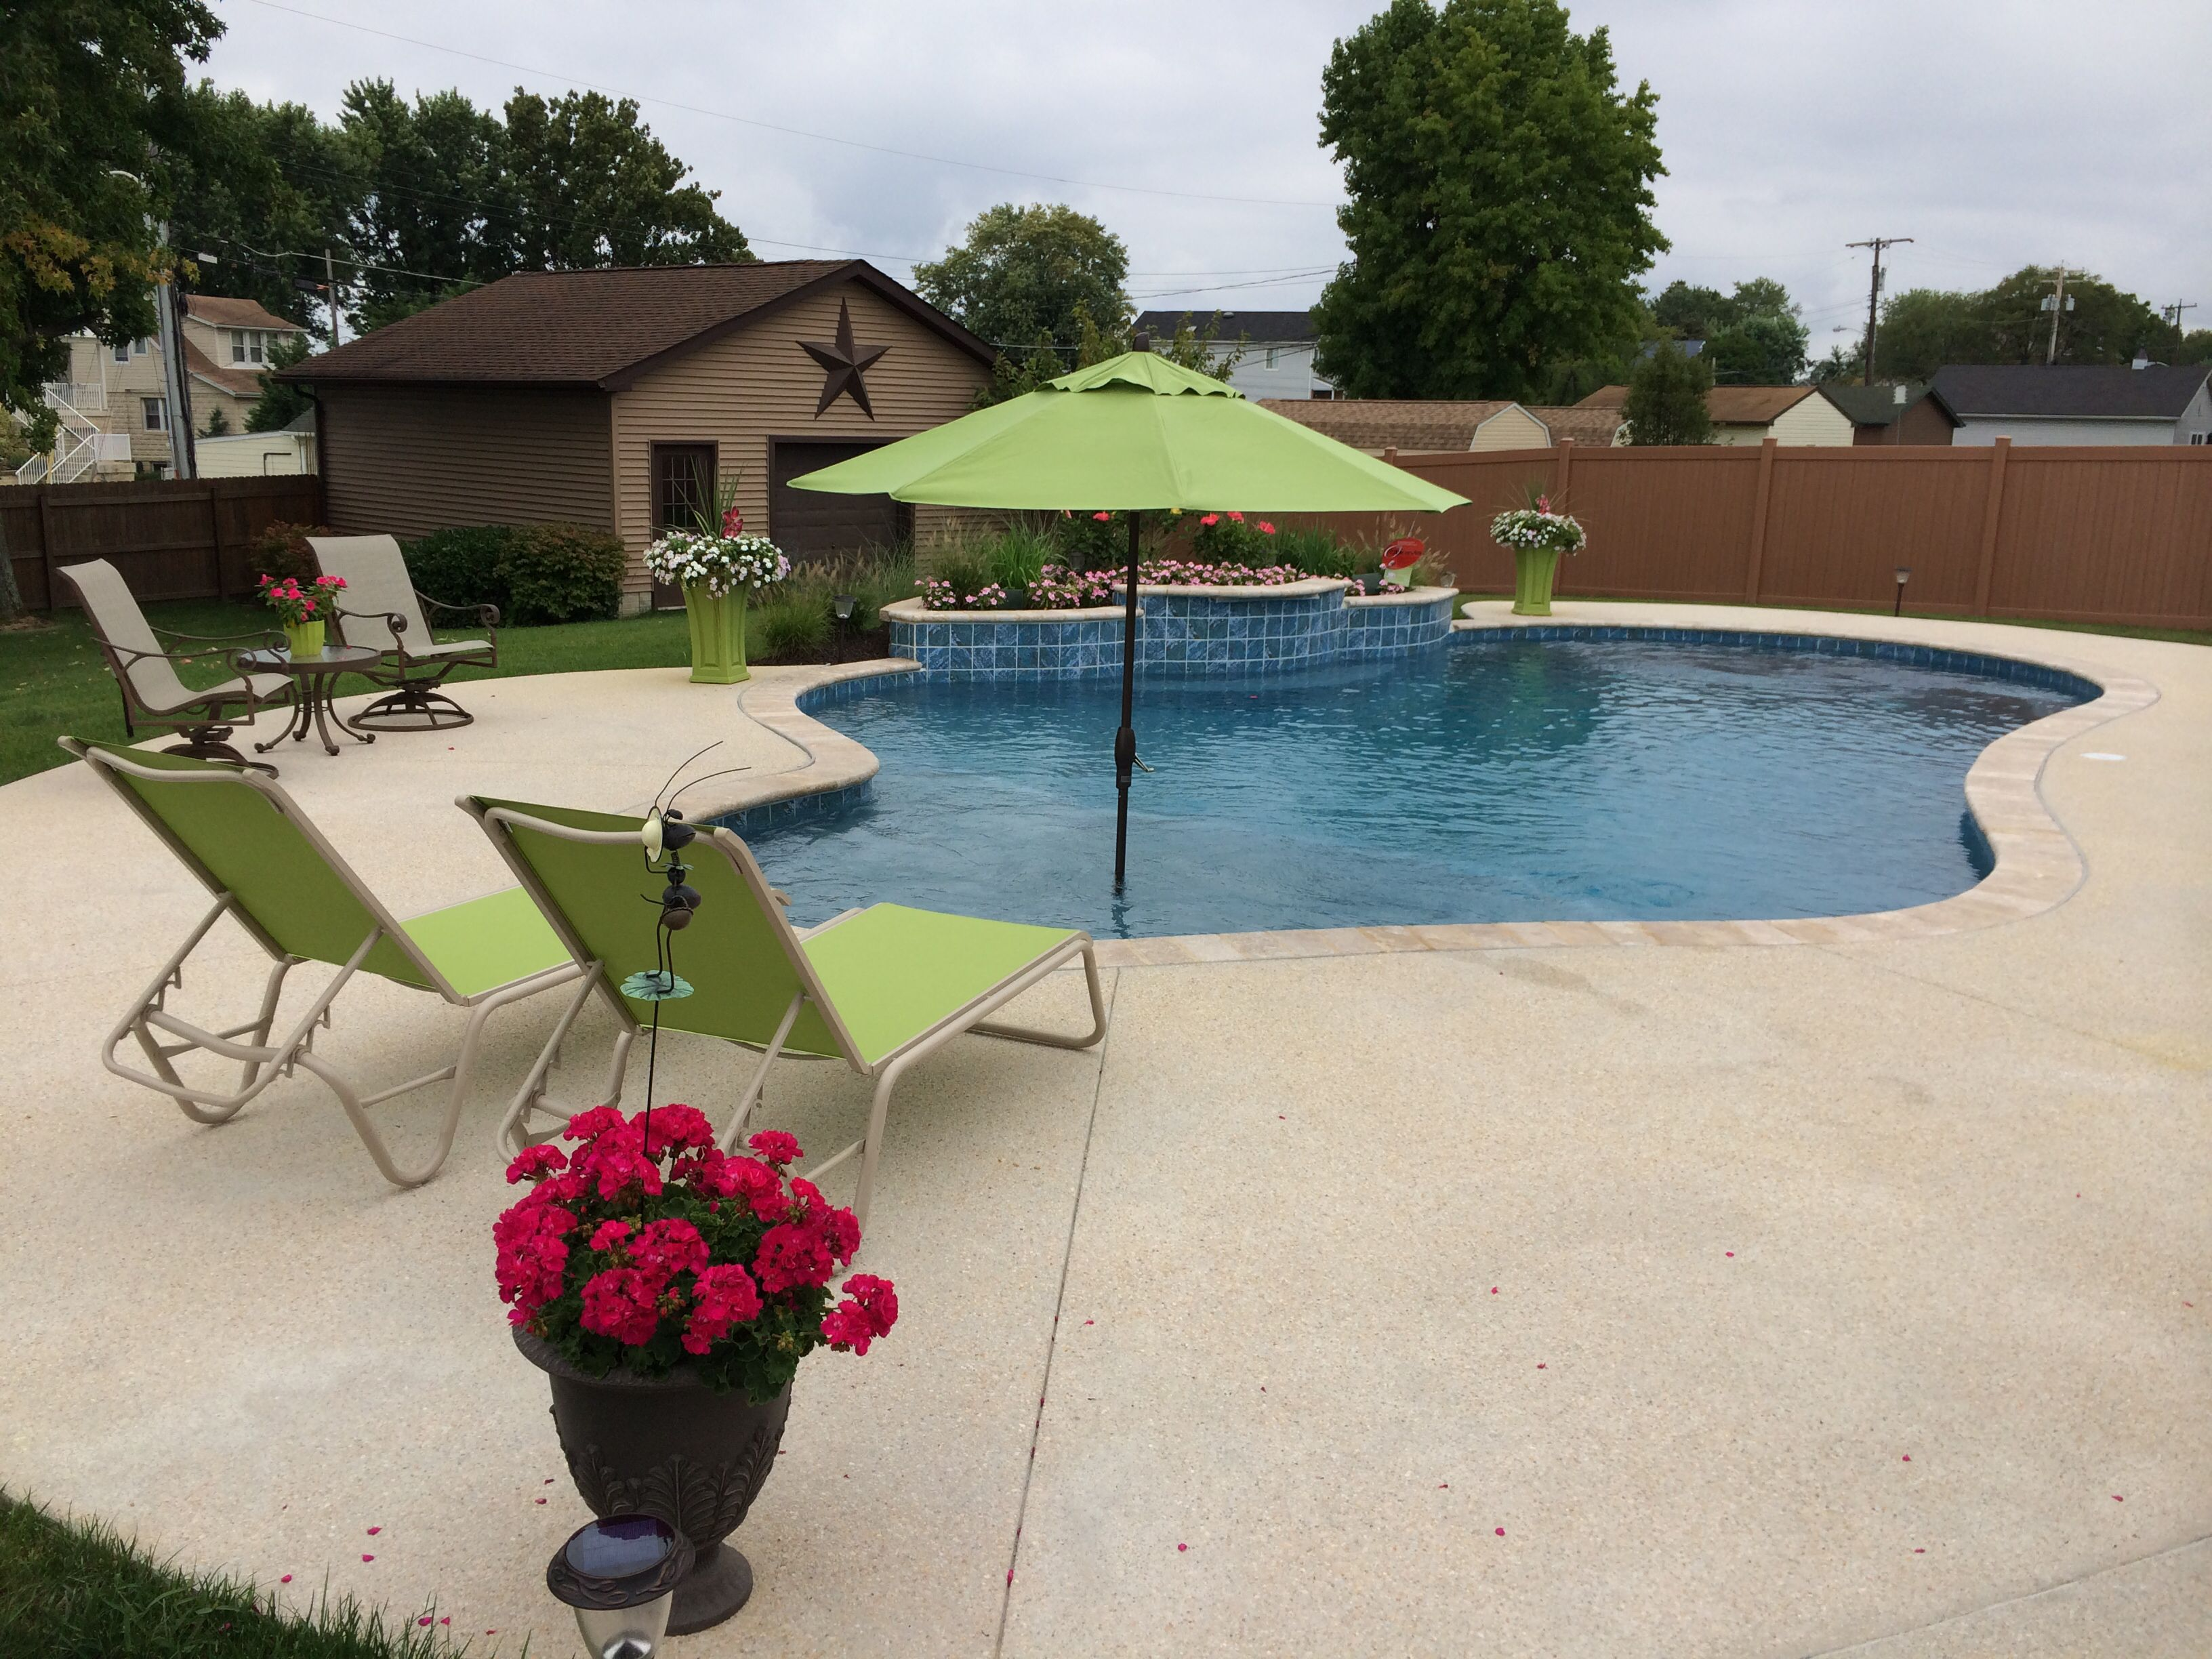 Wonderful Pool Finish Ideas For You To Copy: A Beautiful All Tile Raised Beam Pool With A Tahoe Blue Diamond Bright Interior Finish